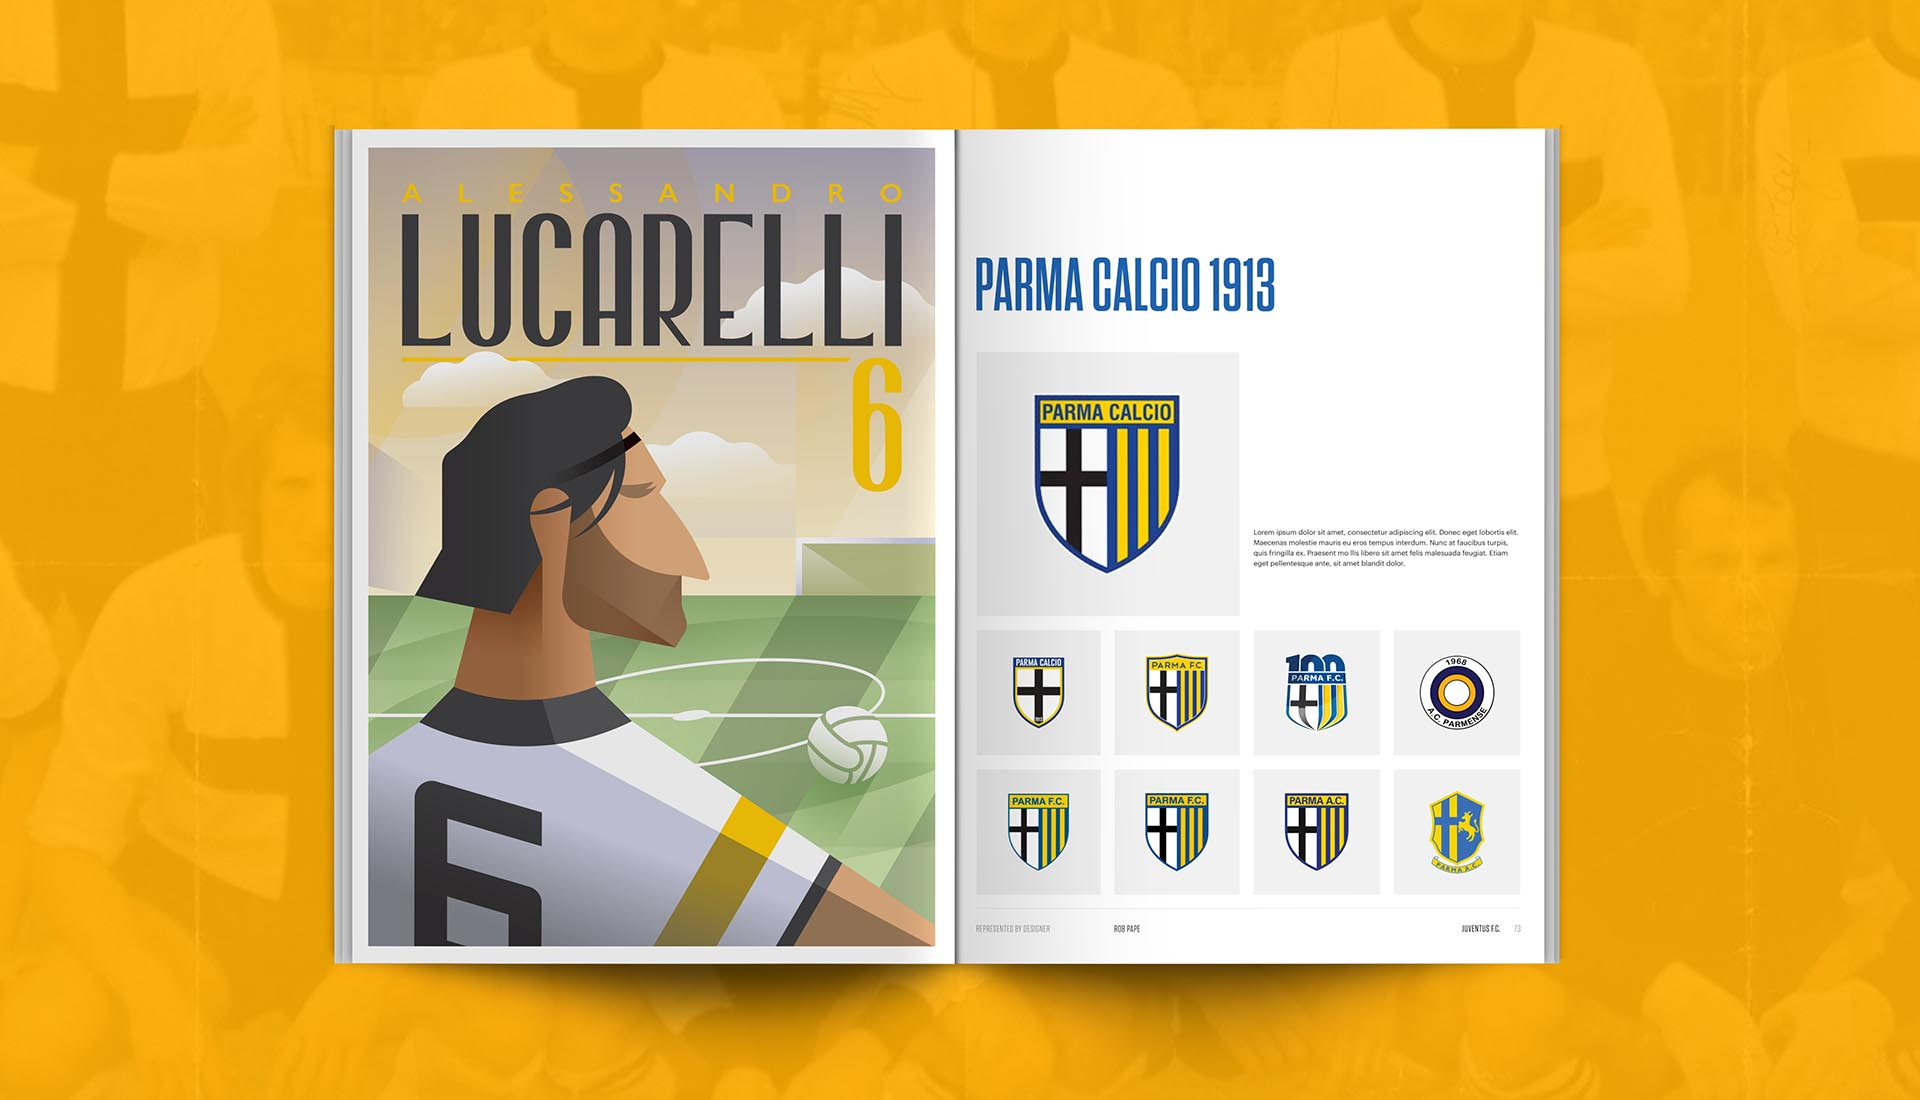 Football Crest Index Italy_0002_T2_Spread_Parma.jpg